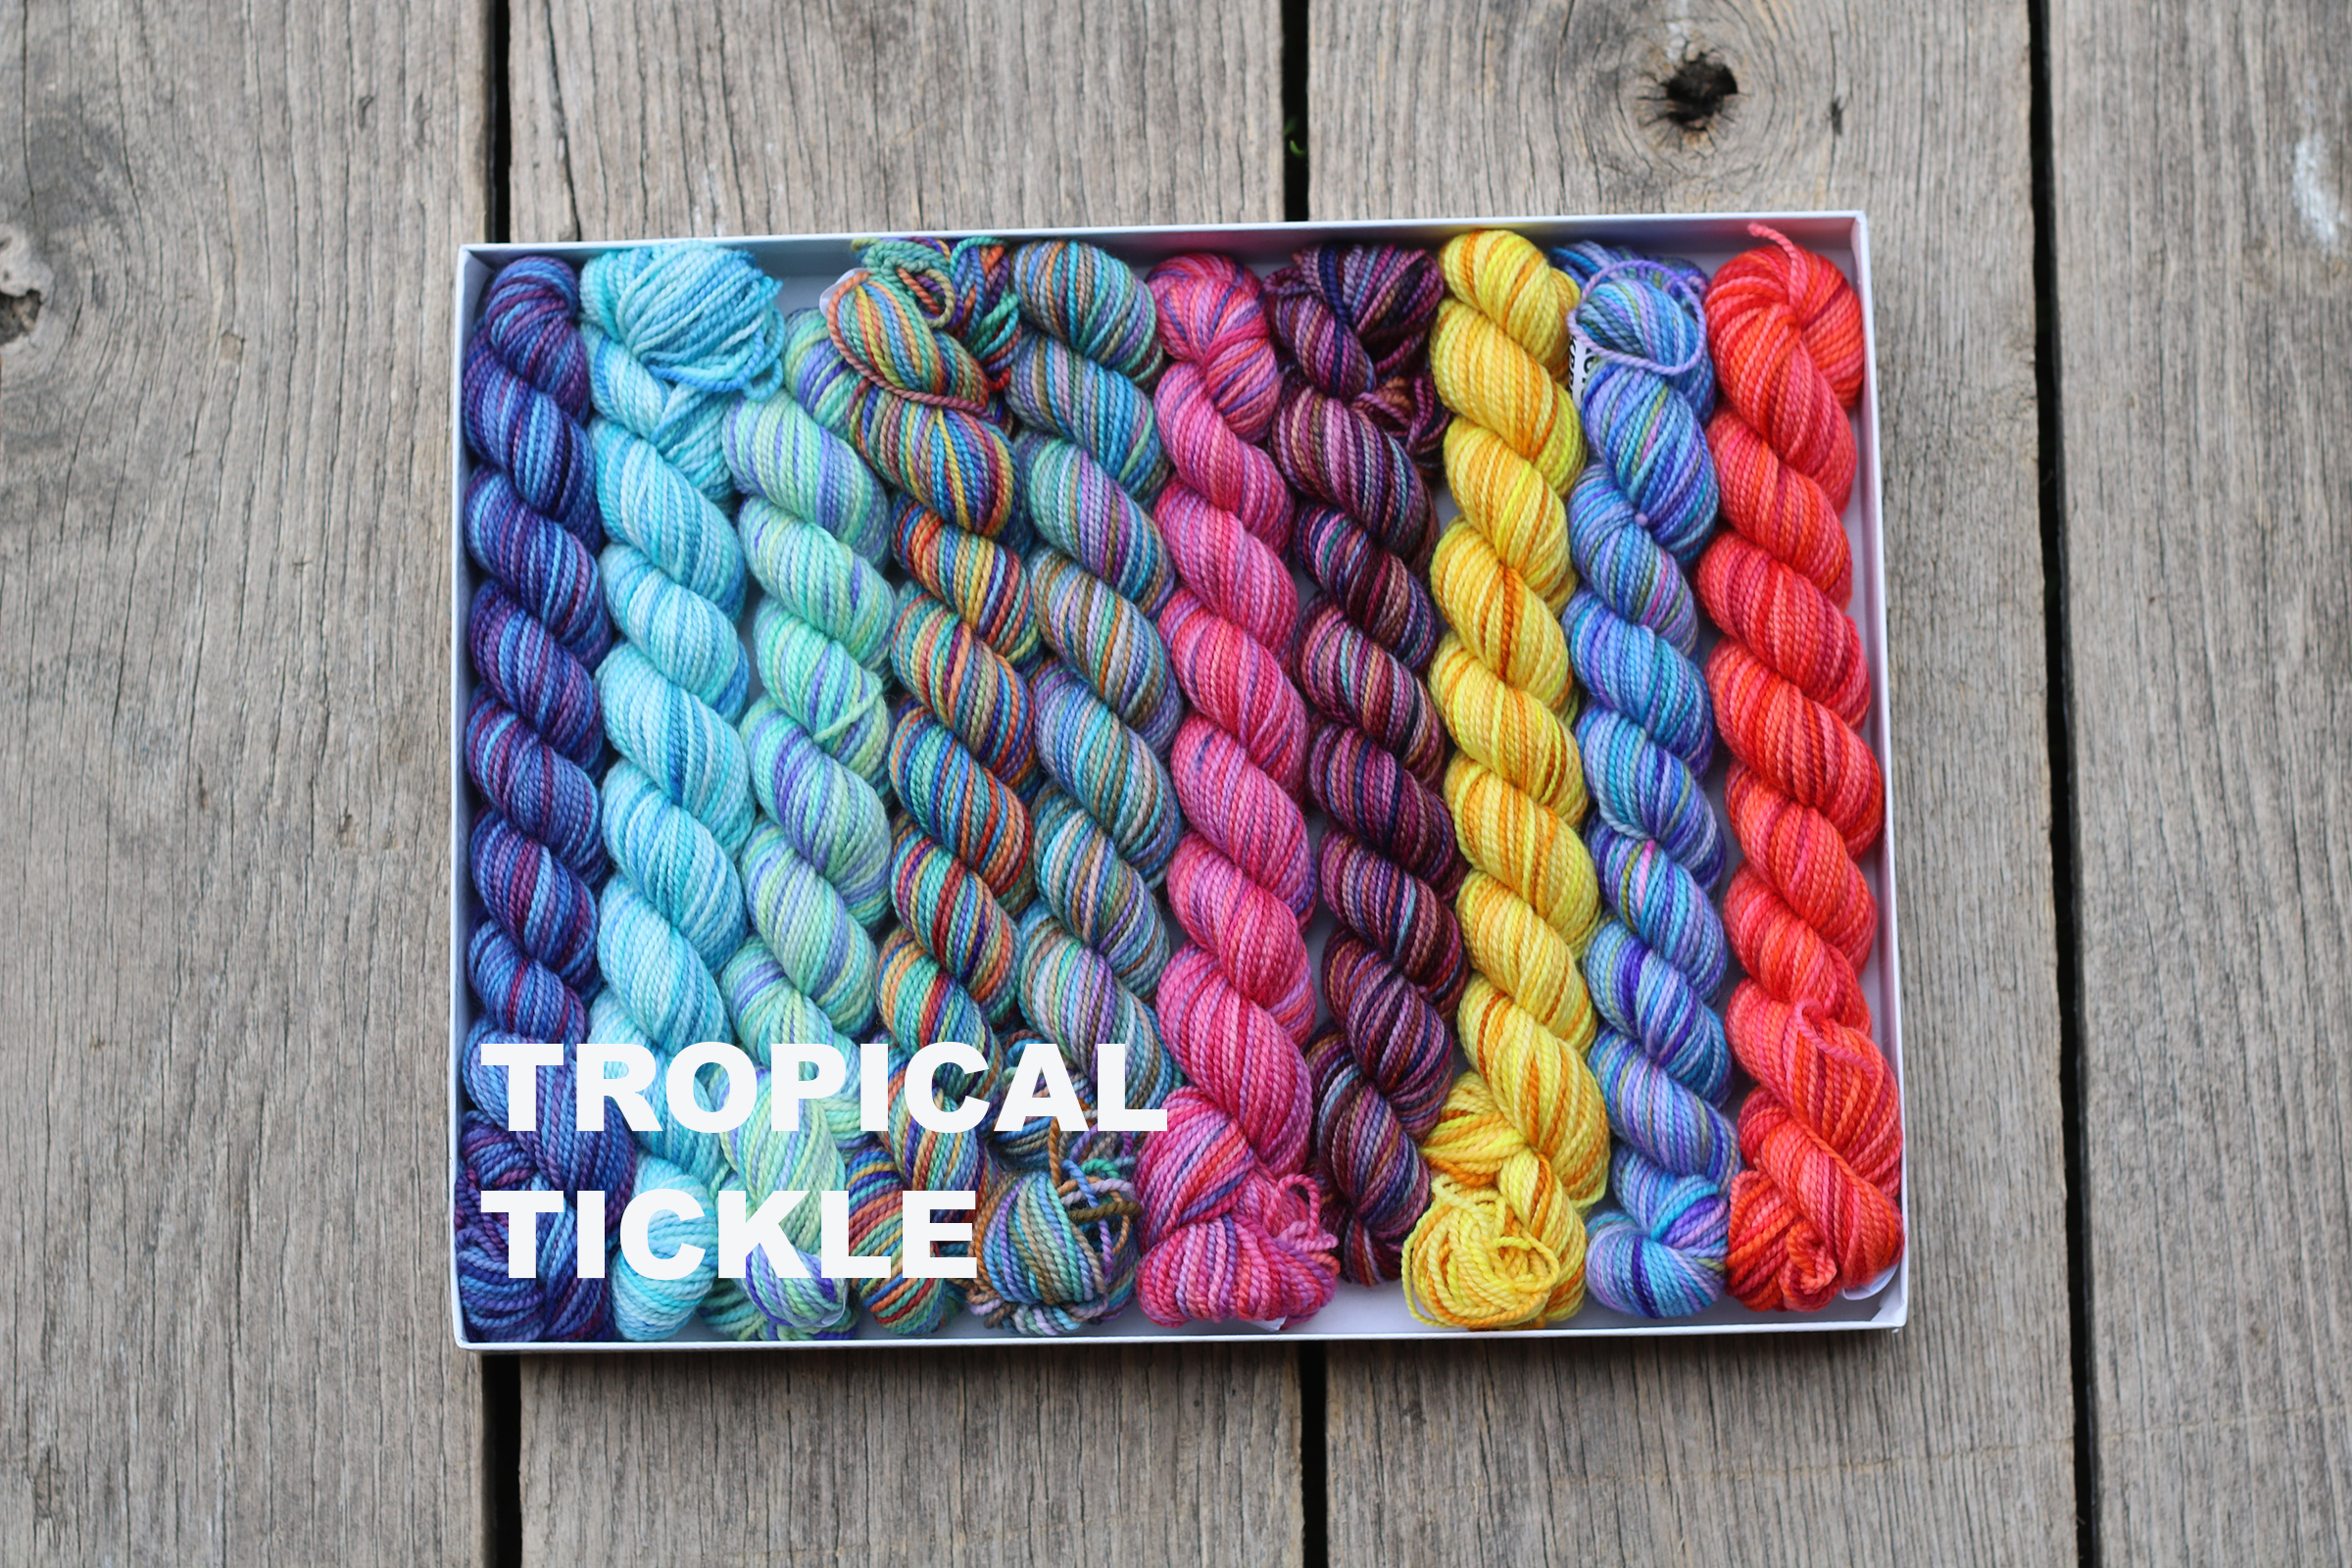 Box Tropical Tickle 0680 300.jpg